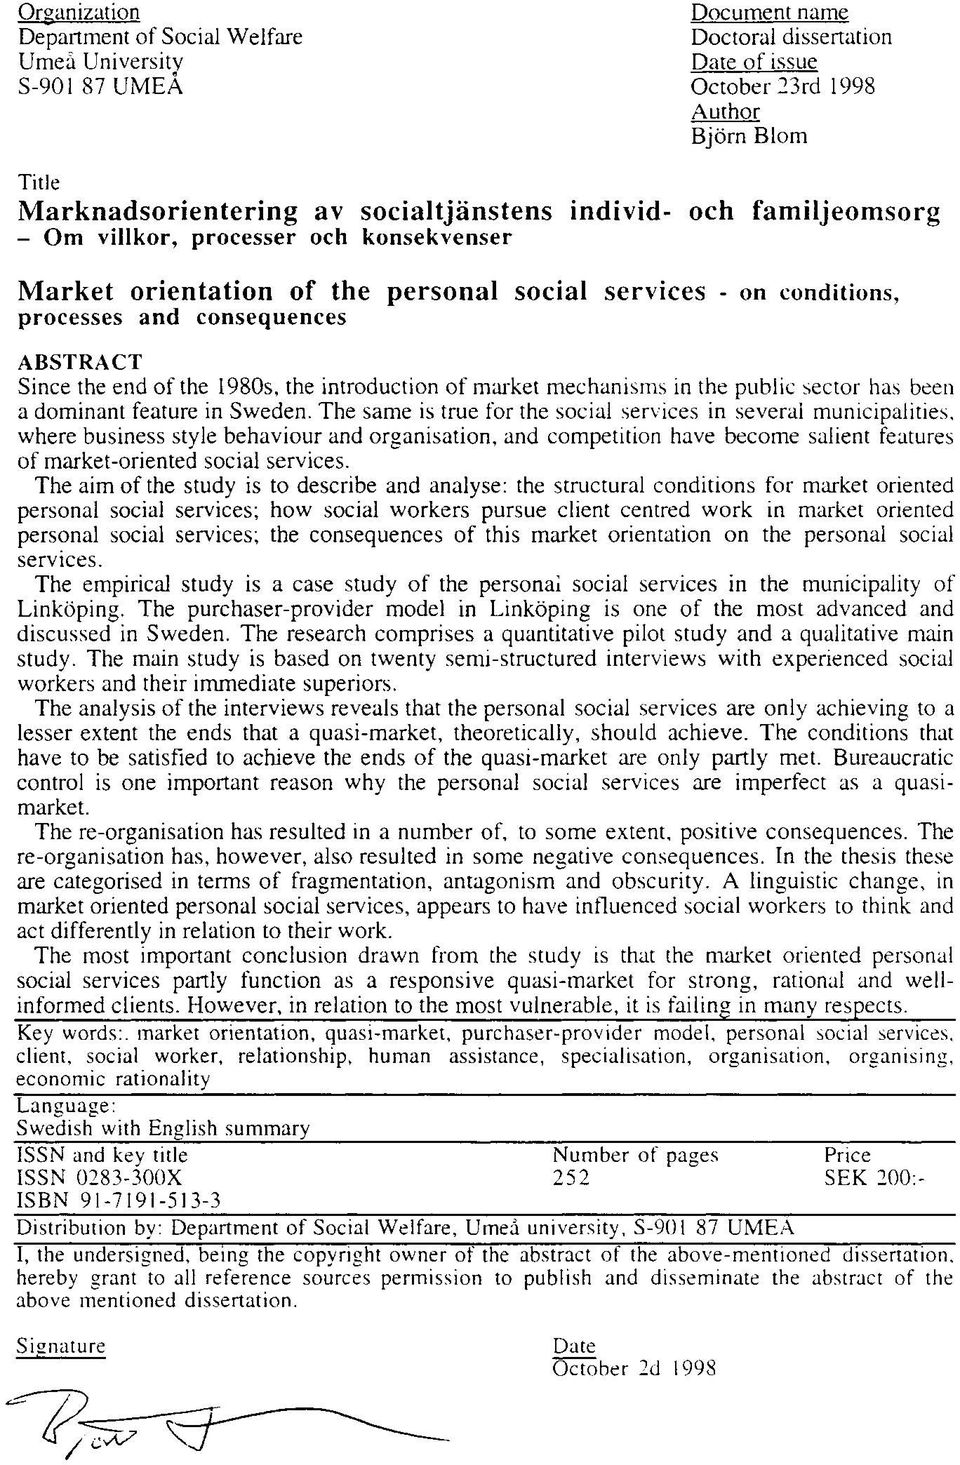 end of the 1980s, the introduction of market mechanisms in the public sector has been a dominant feature in Sweden.